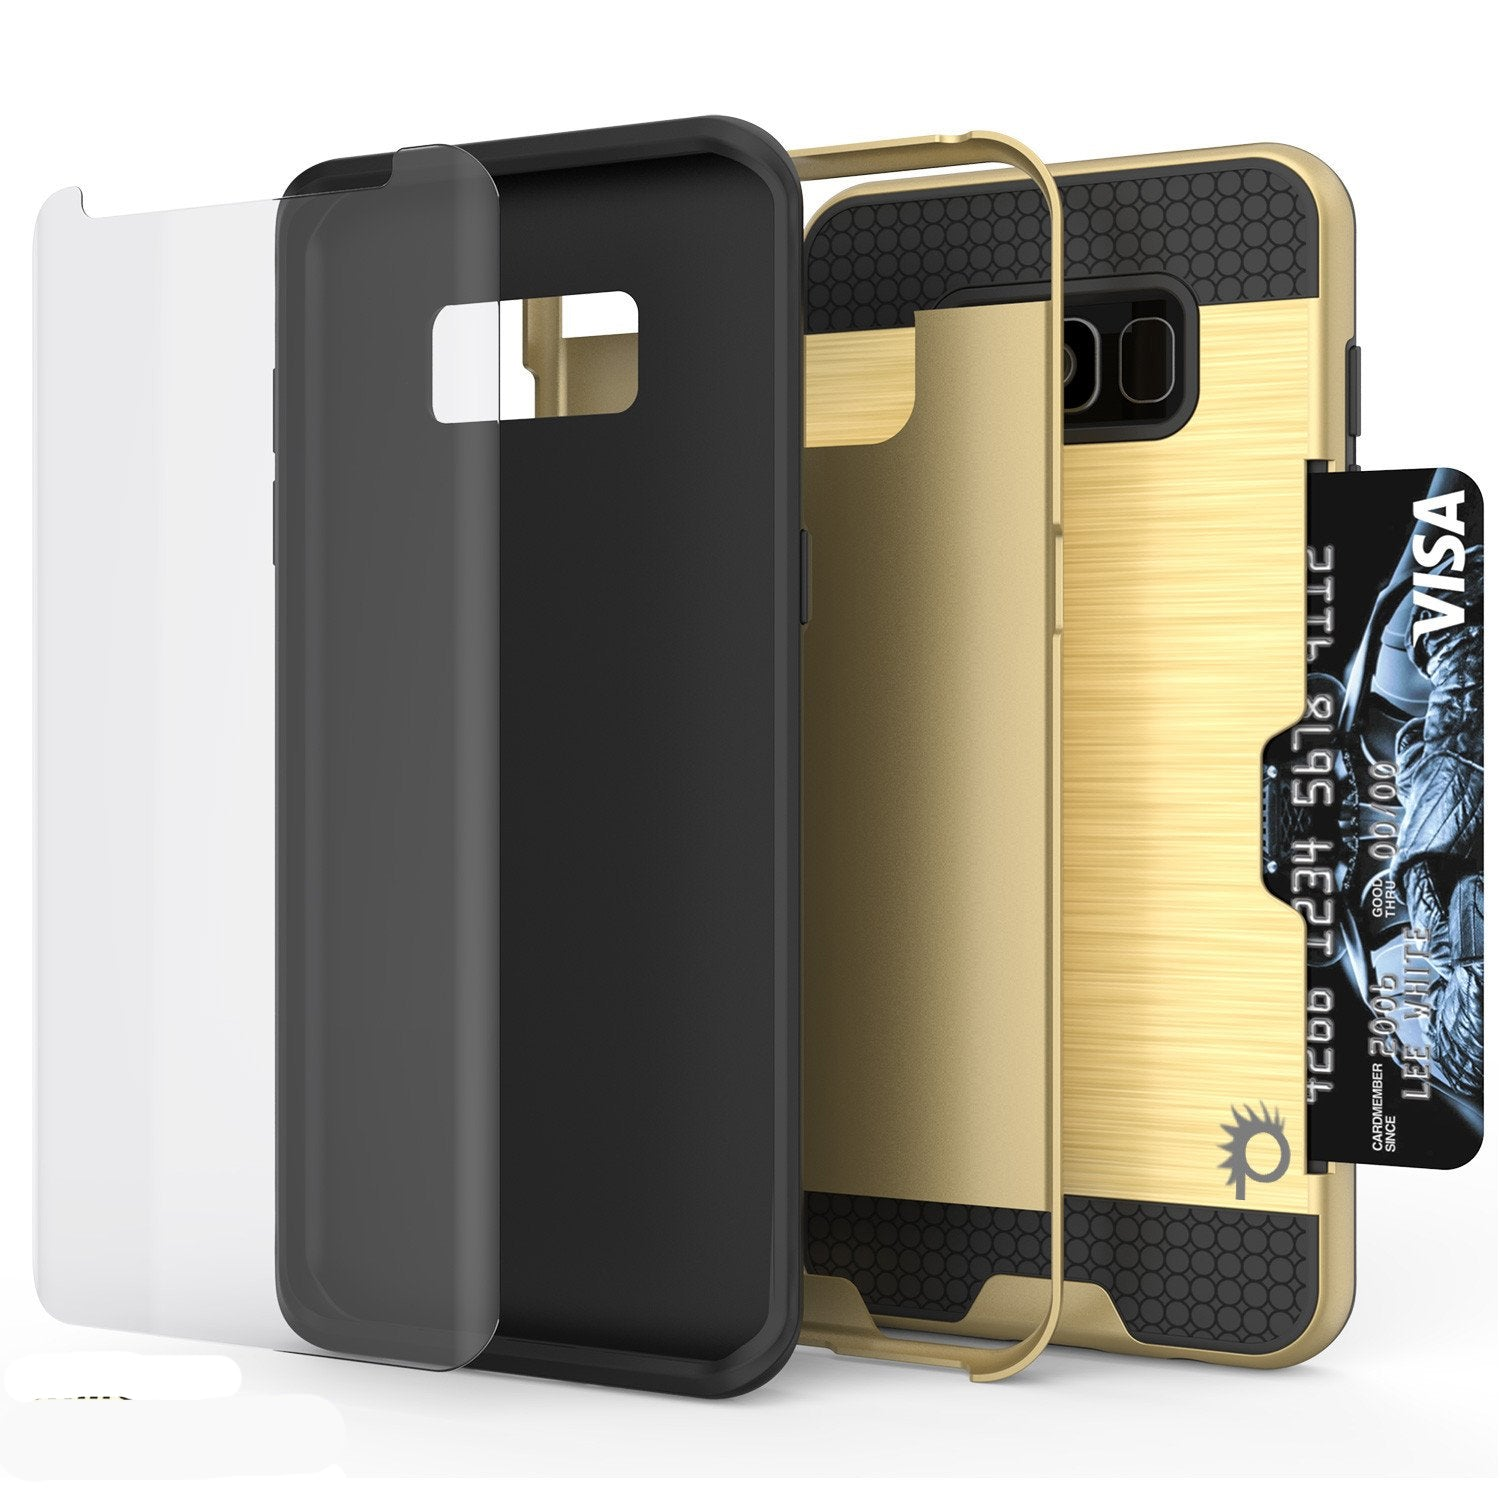 Galaxy S8 Plus Case, PUNKcase [SLOT Series] [Slim Fit] Dual-Layer Armor Cover w/Integrated Anti-Shock System [Gold]